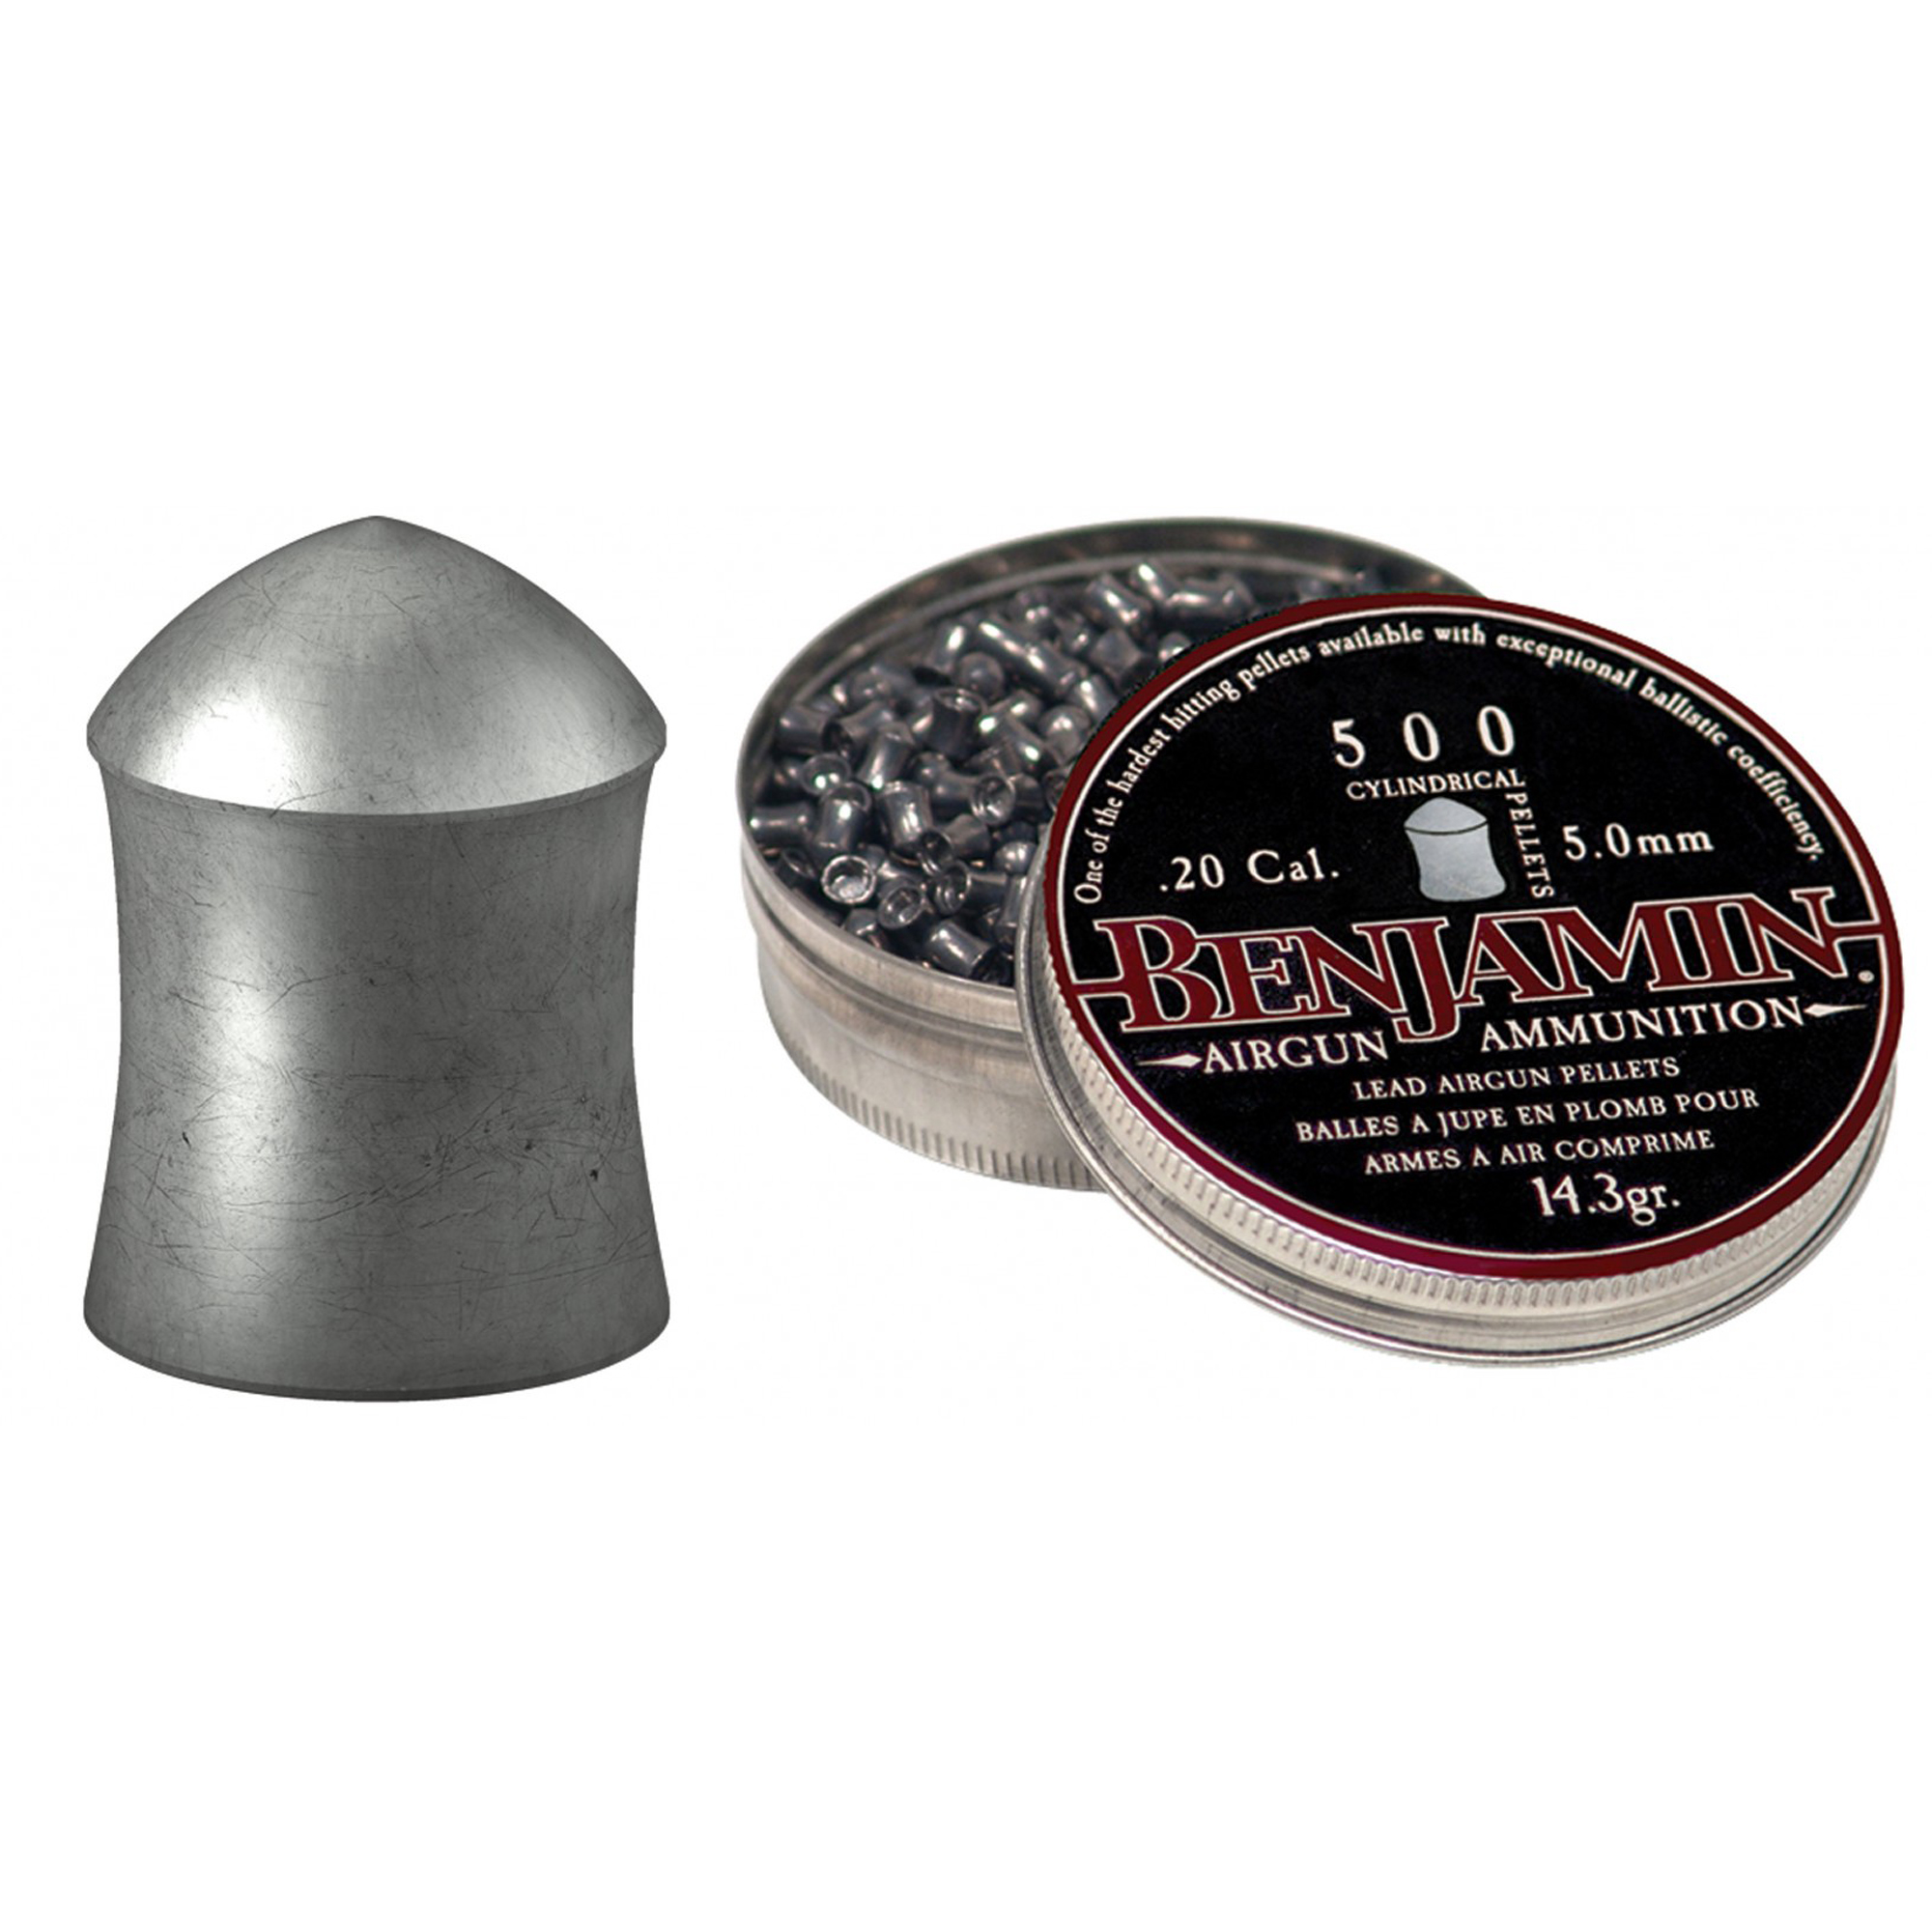 High performance hunting and plinking pellets for .20 caliber airguns.